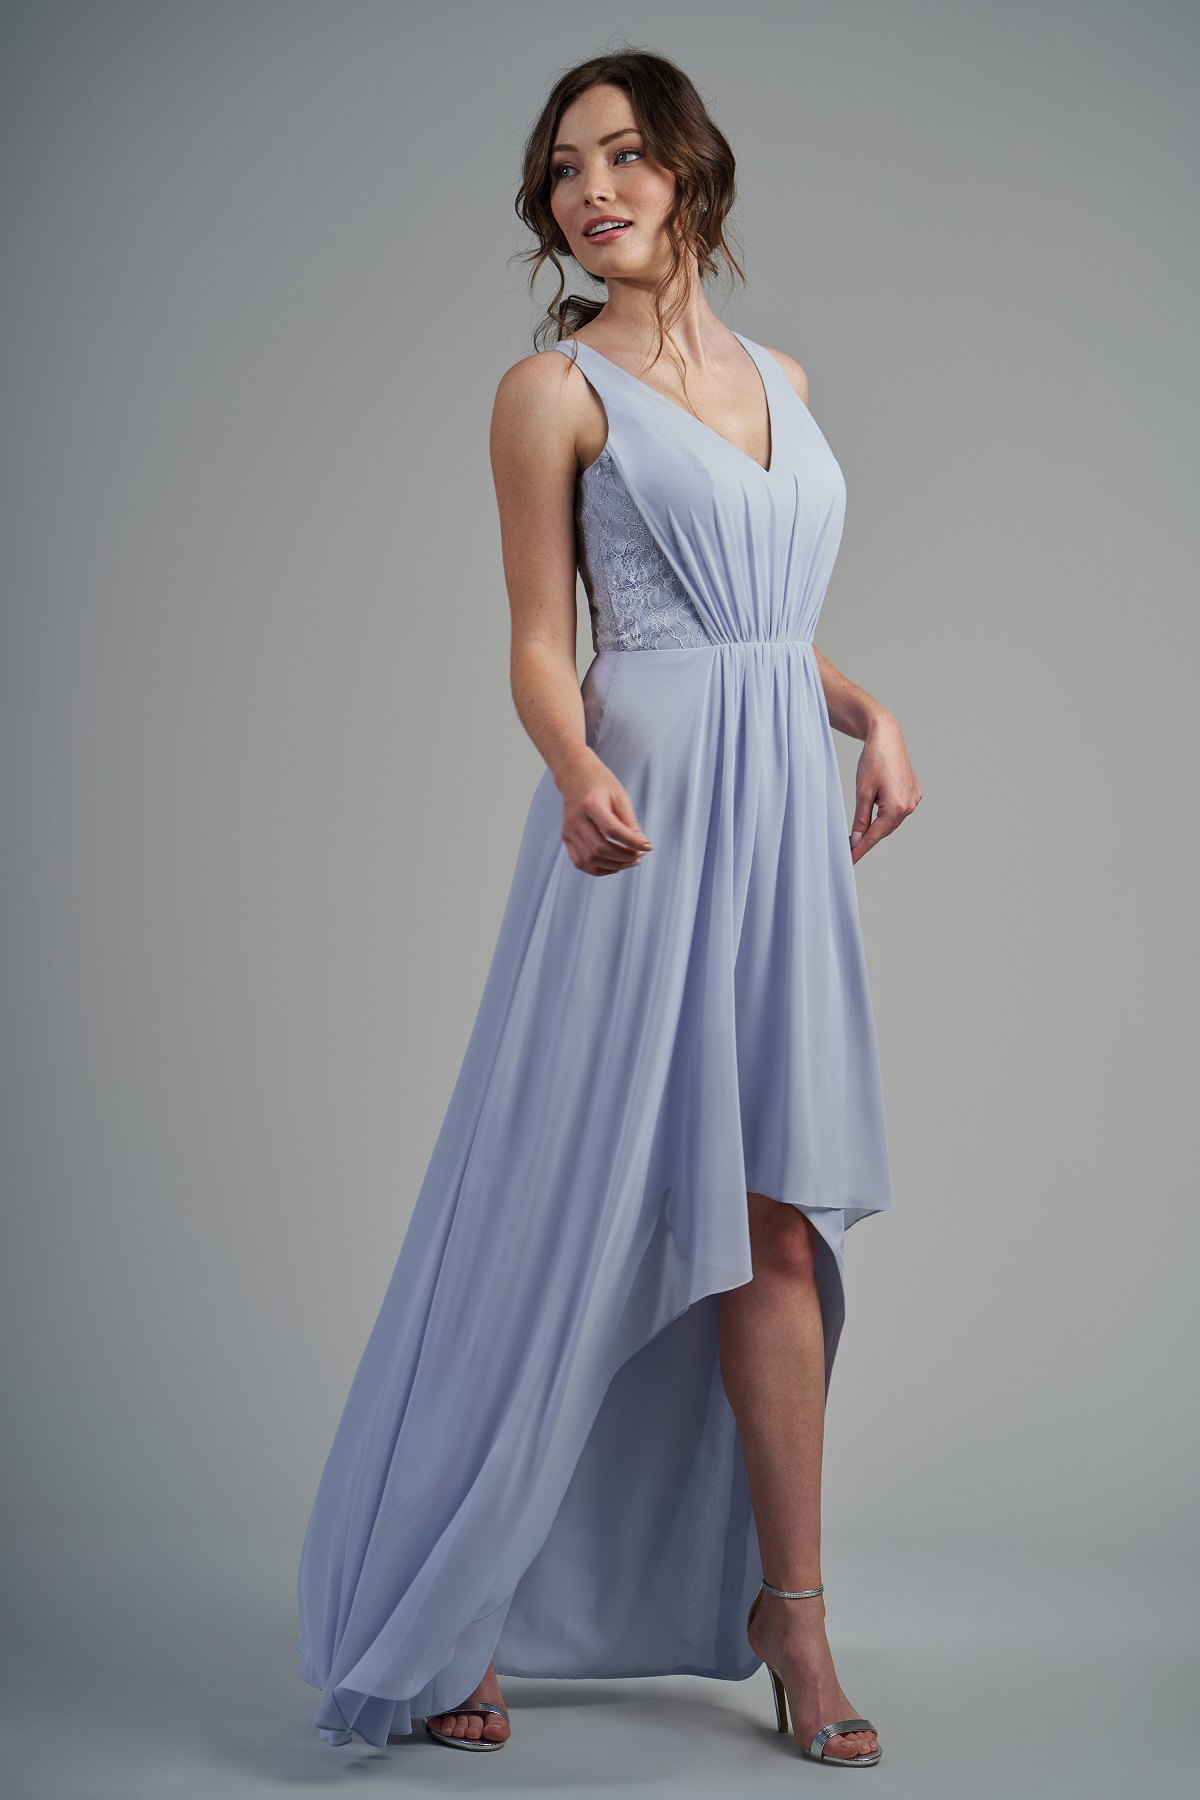 344ad658a91 B213015 Poly Chiffon   Lace High-Low Bridesmaid Dress with V-Neckline